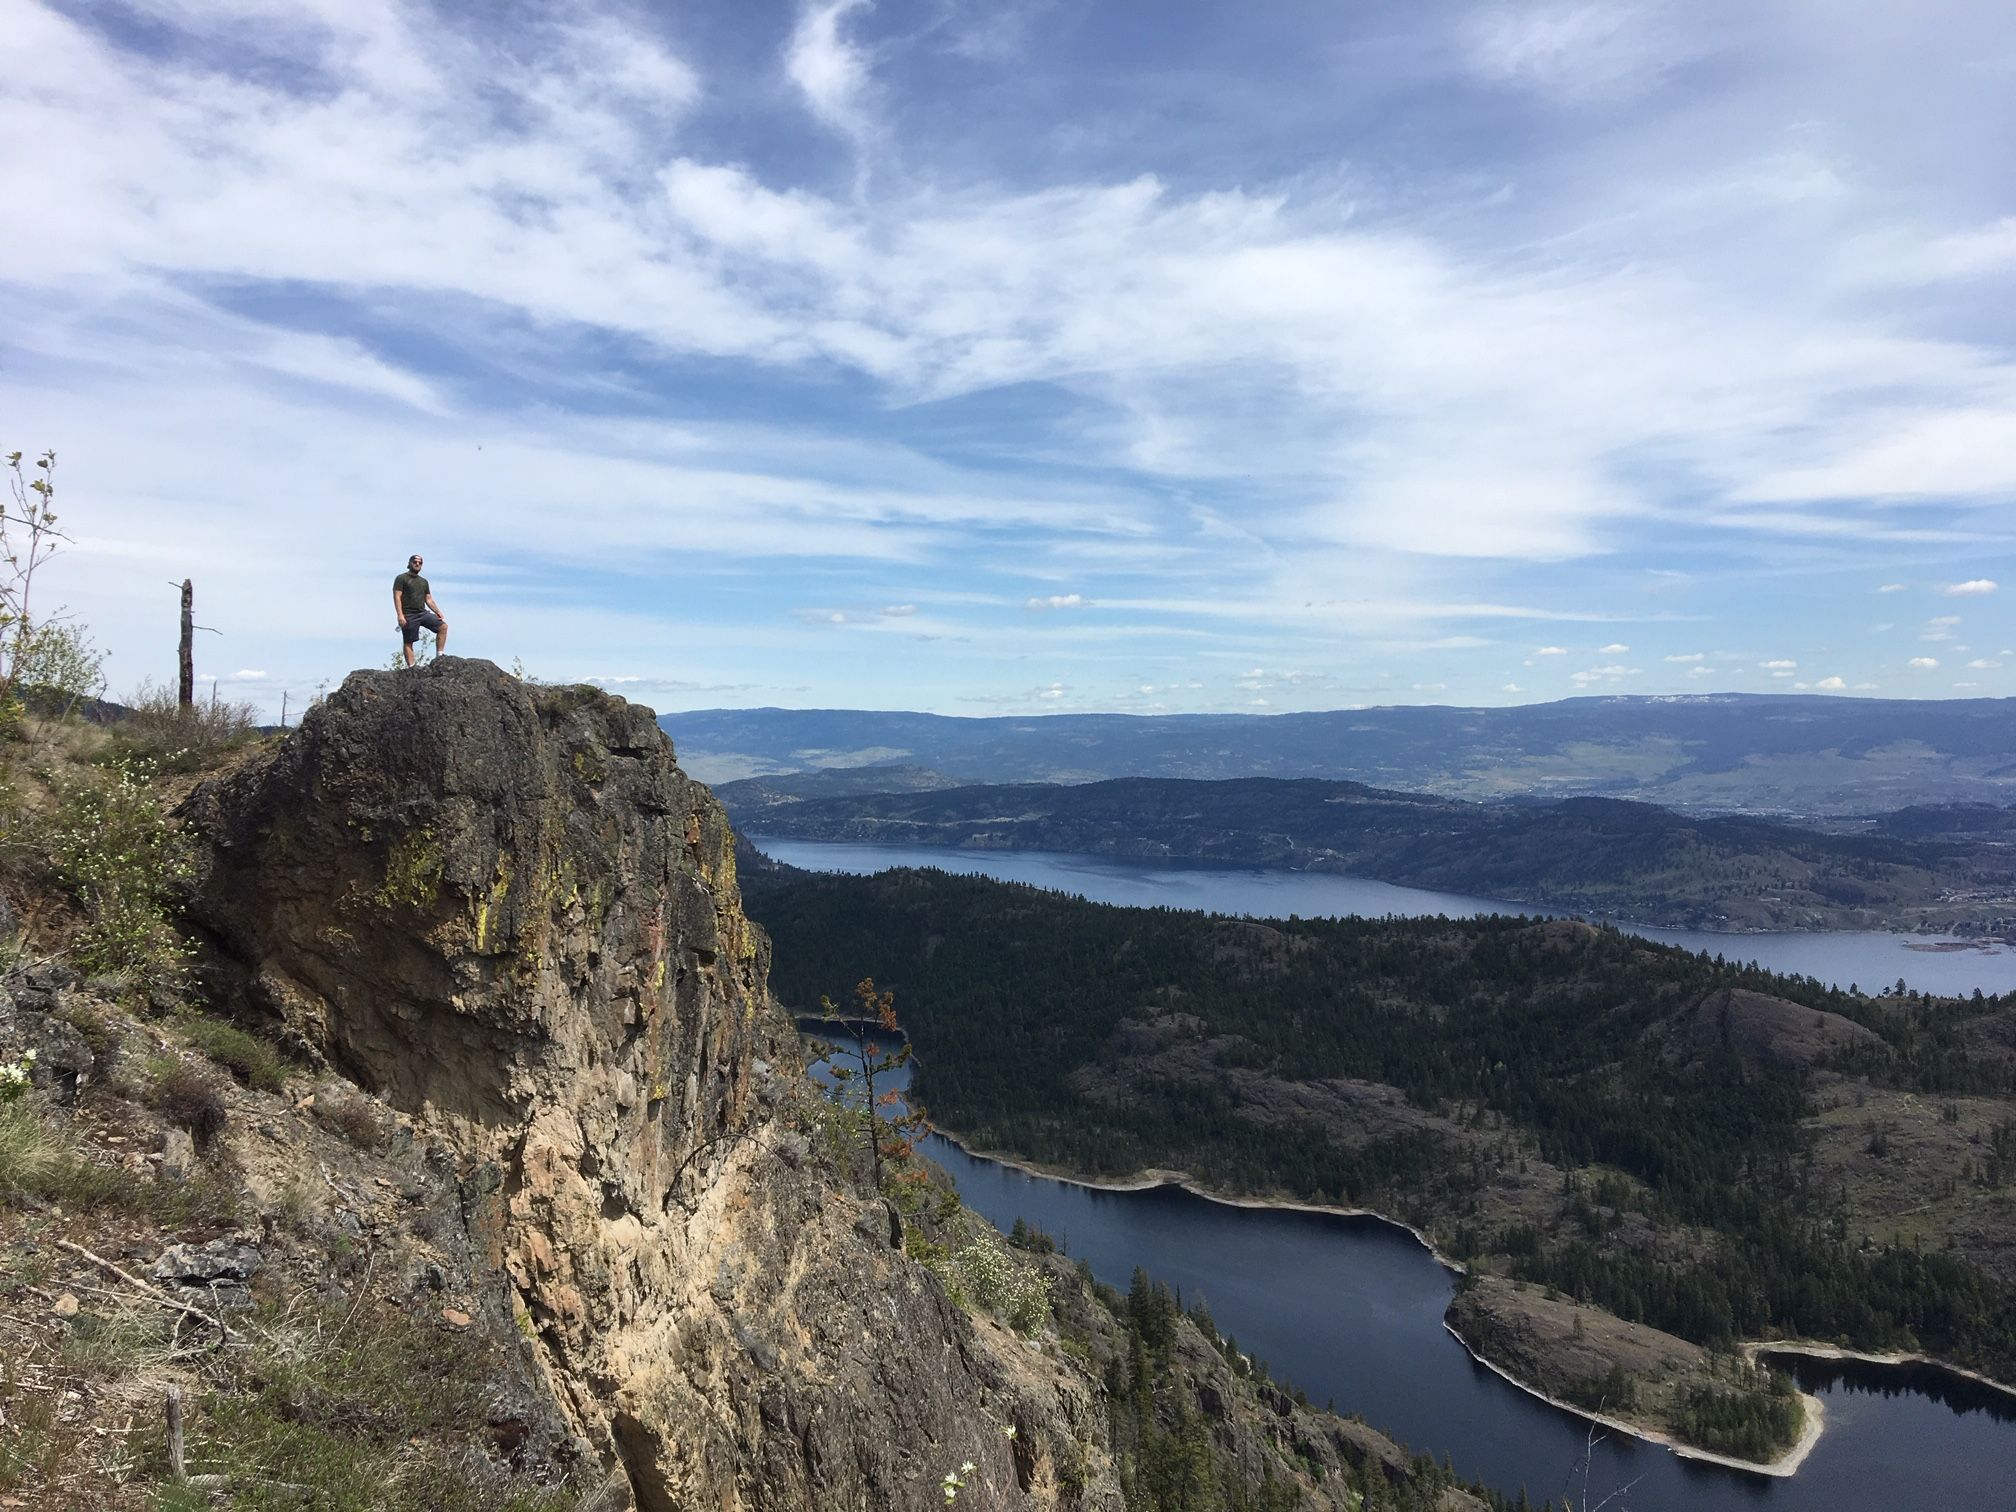 Top of McDougall Rim Trail with Okanagan Lake and Rose Valley Lake.